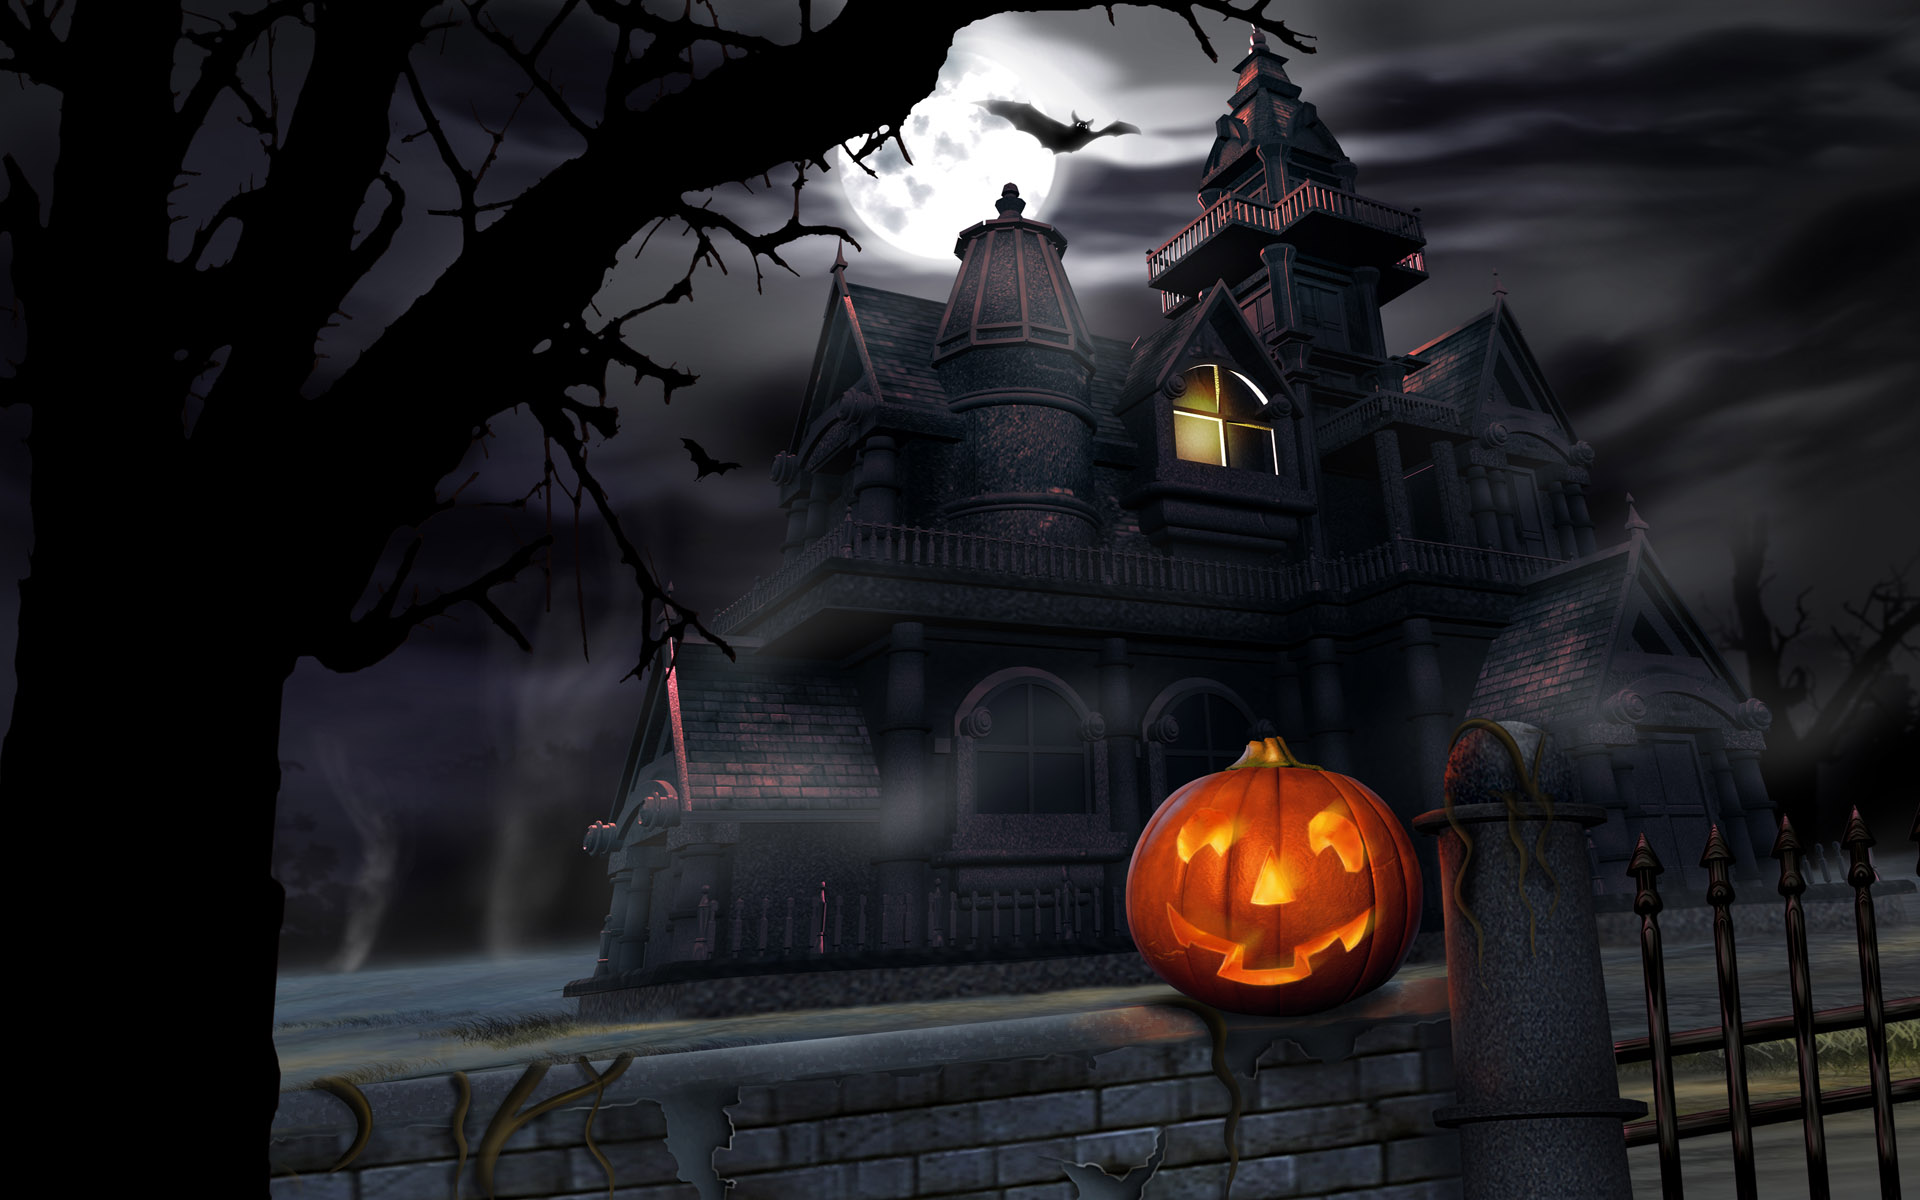 Scary Halloween 2012 HD Wallpapers Pumpkins Witches 1920x1200